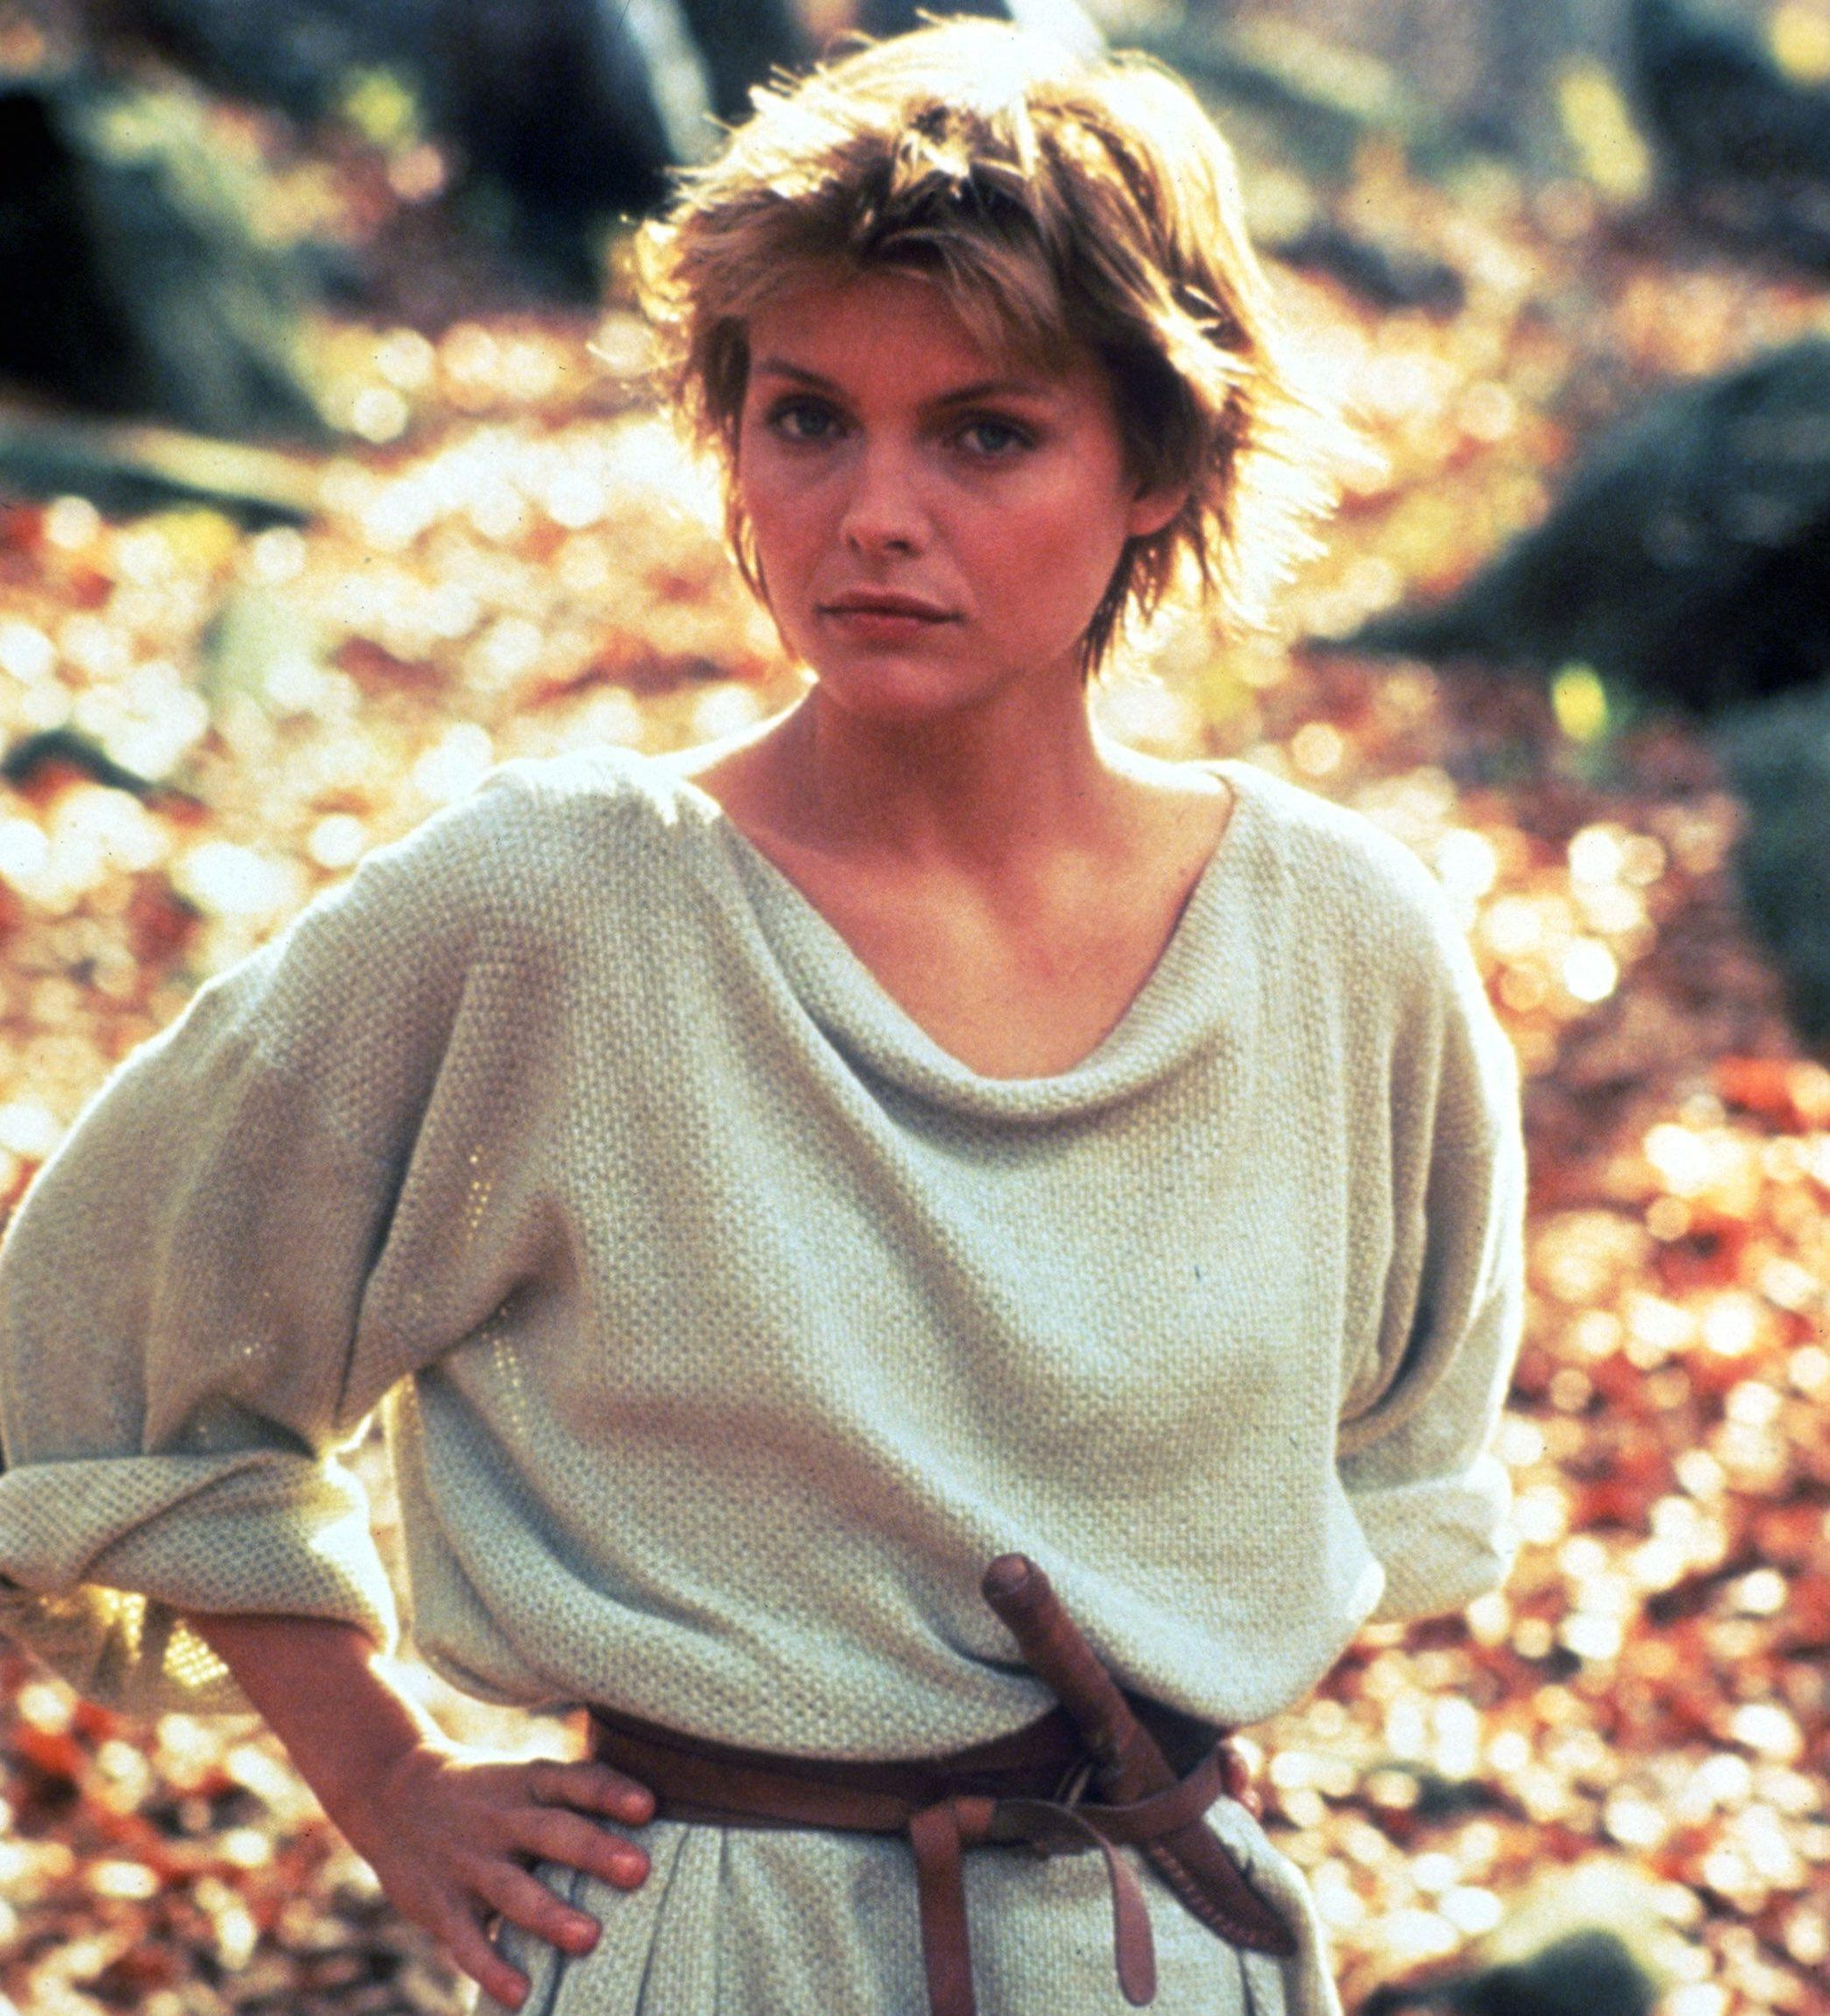 435q4e2iir231 e1581422323947 20 Fantastic Facts About The 1985 Sword And Sorcery Film Ladyhawke